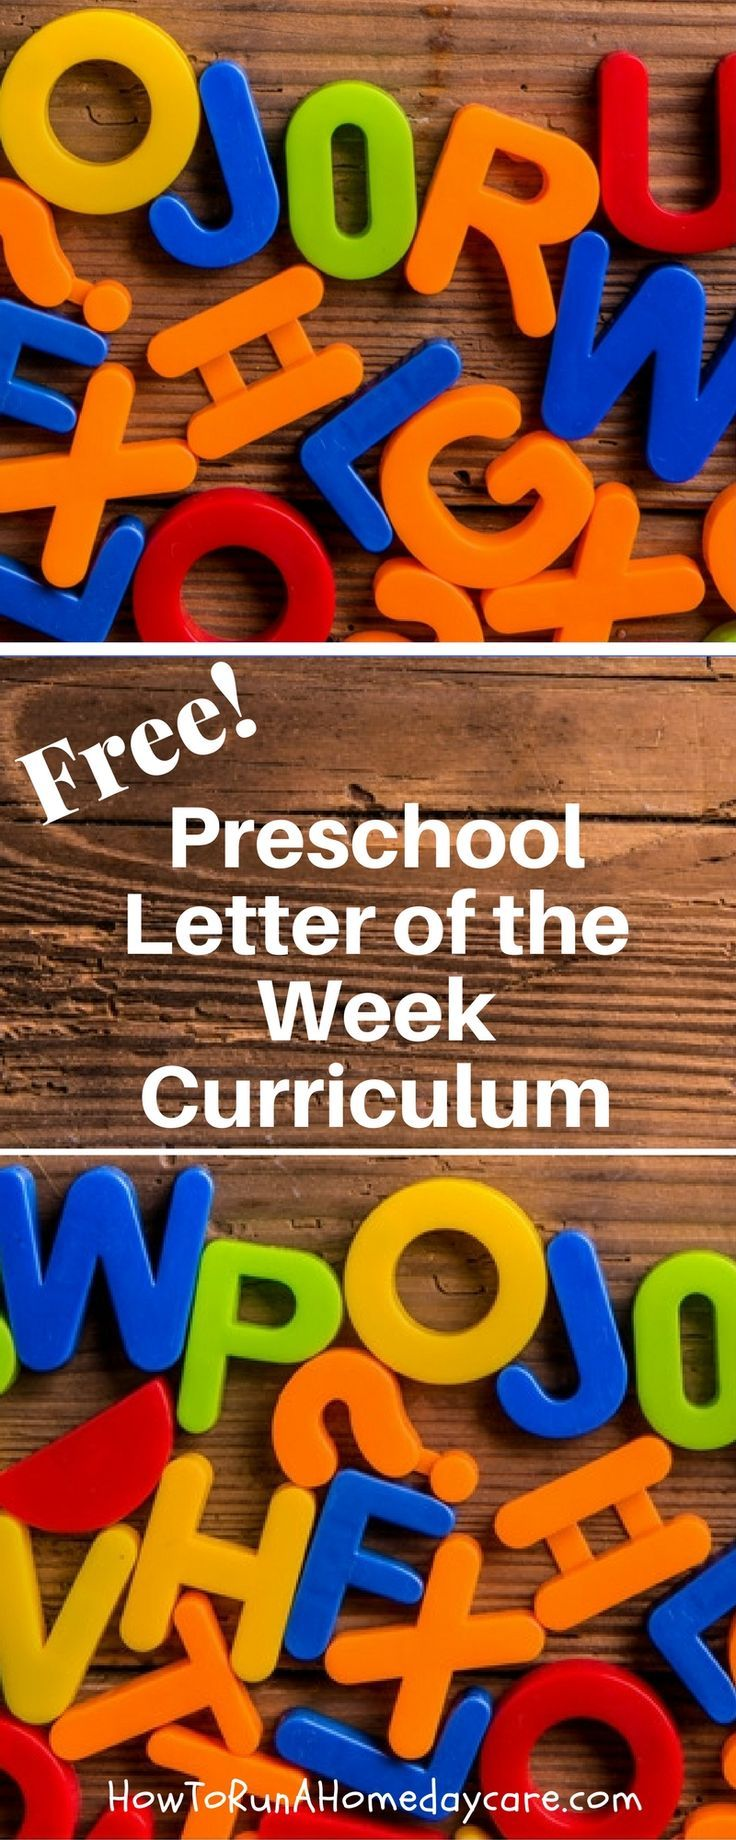 Preschool Letter of the Week Program - Free